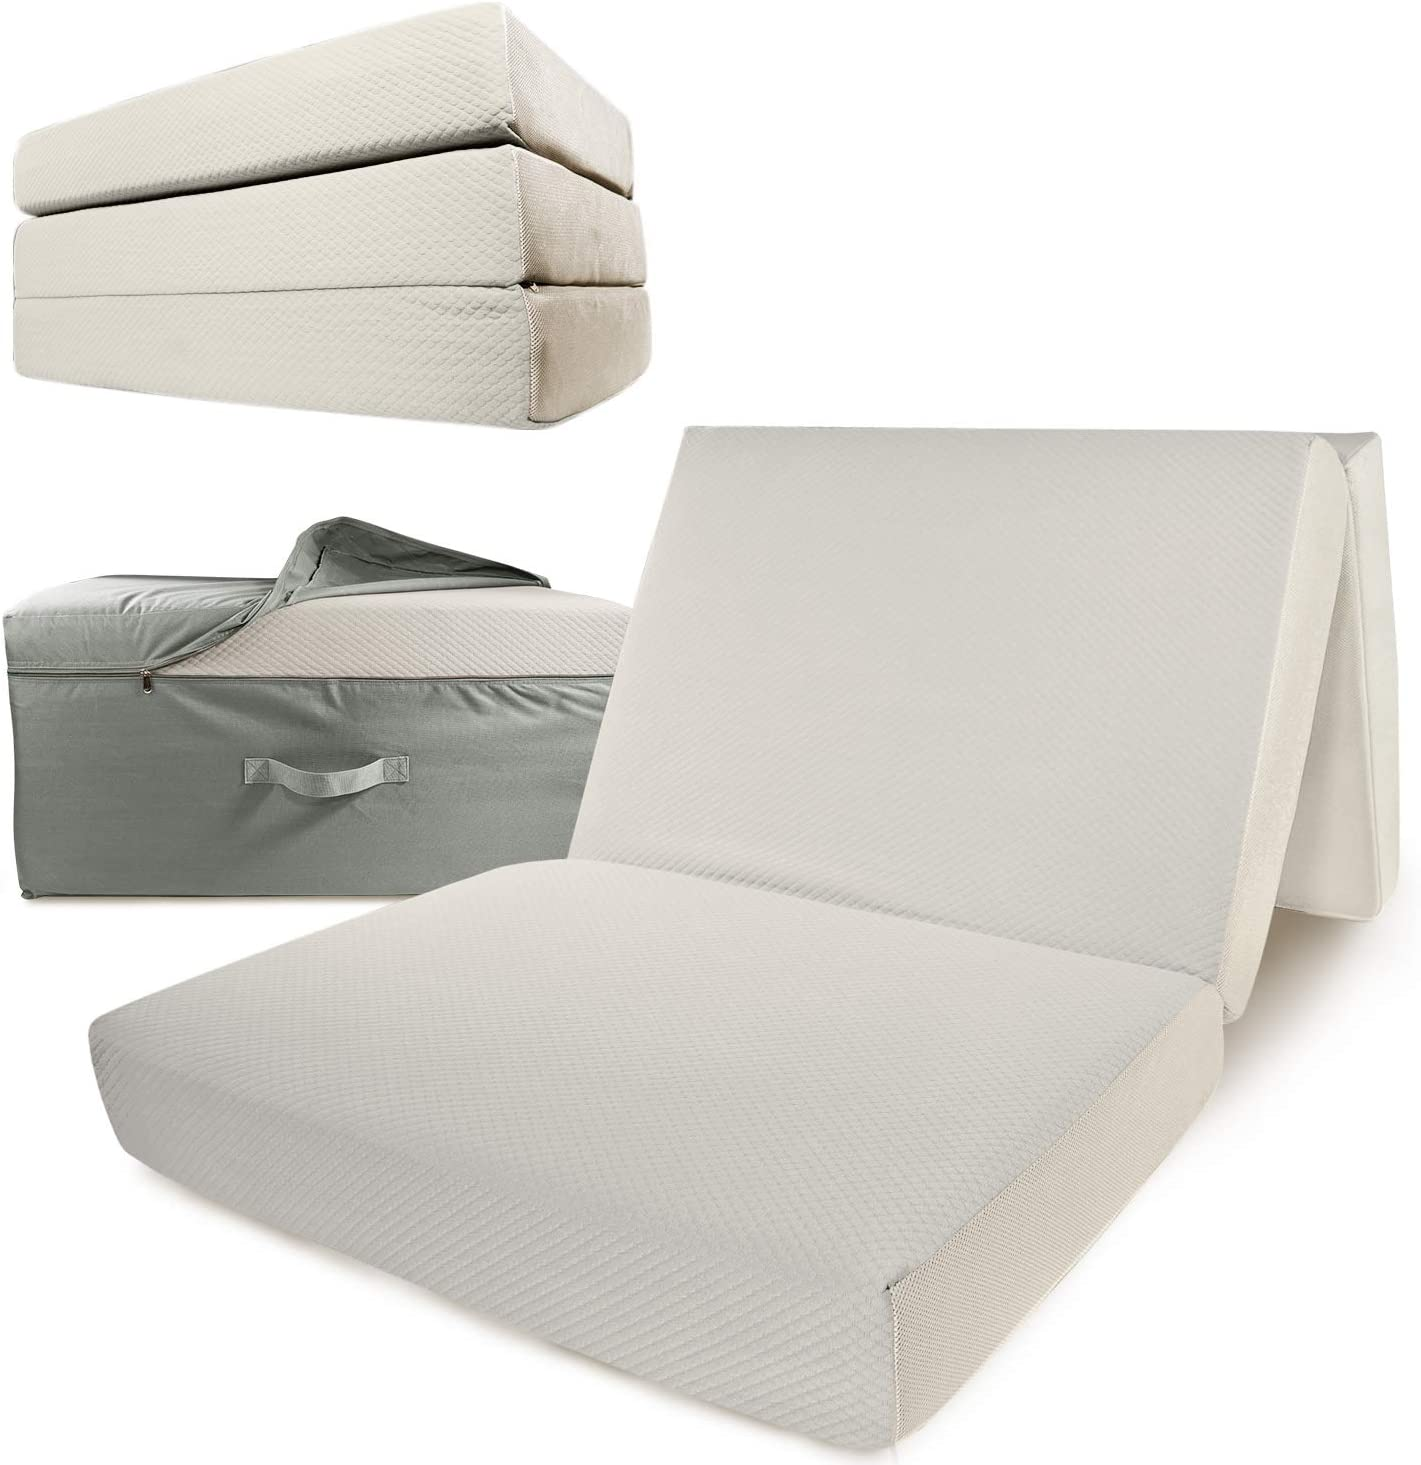 Portable Mattress – Folding Memory Foam Guest Fold Up Bed w Case Tri-Fold 6 Inch Travel Away Floor, Futon Camp Cot Topper for Fast Trifold Foldable Fold-Up Fold-Out Sleep Comfort Twin